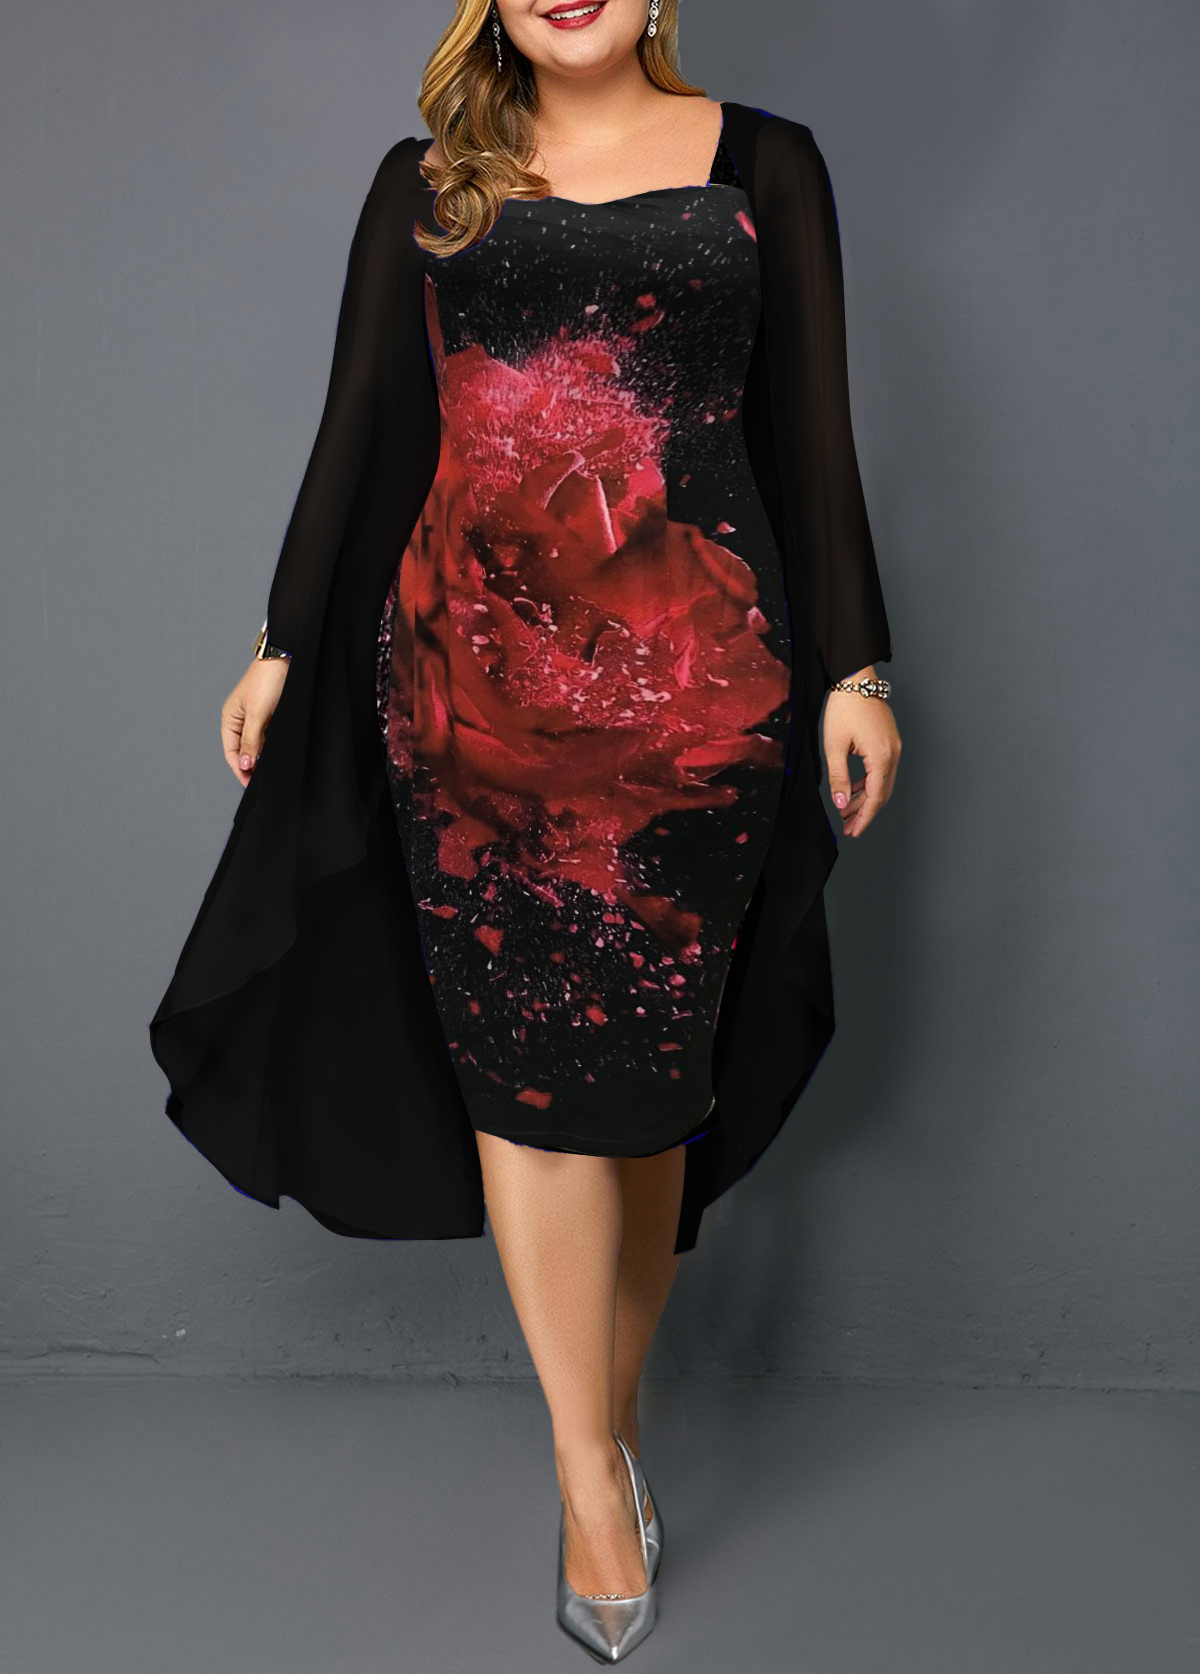 Plus Size Black Chiffon Cardigan and Flower Print Dress